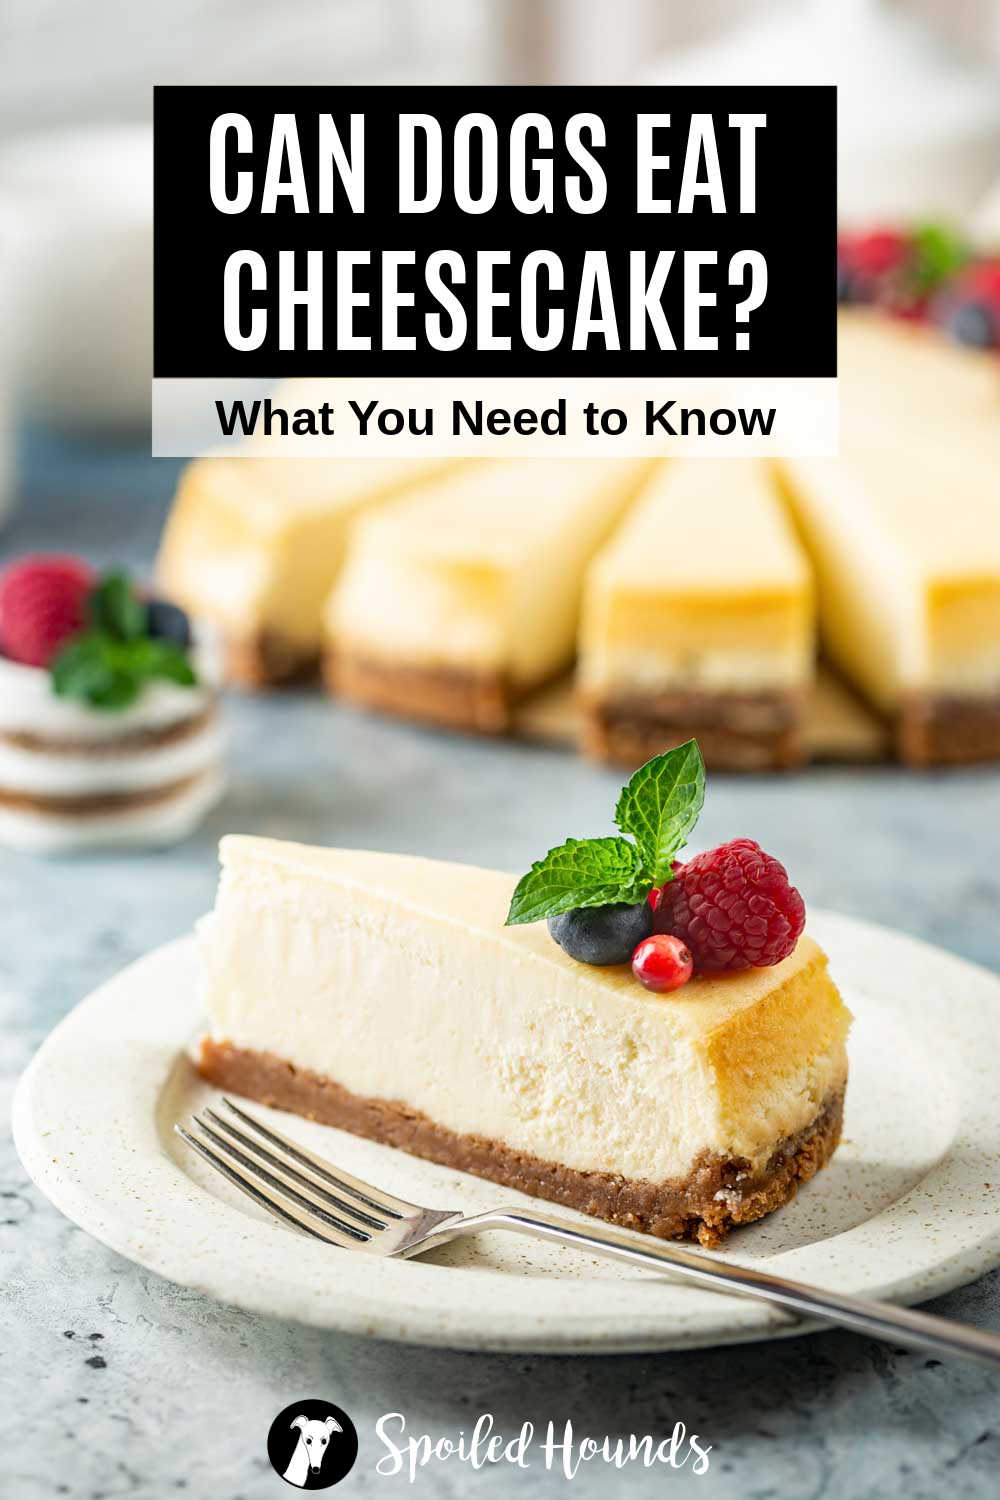 a slice of cheesecake and a fork on a plate.